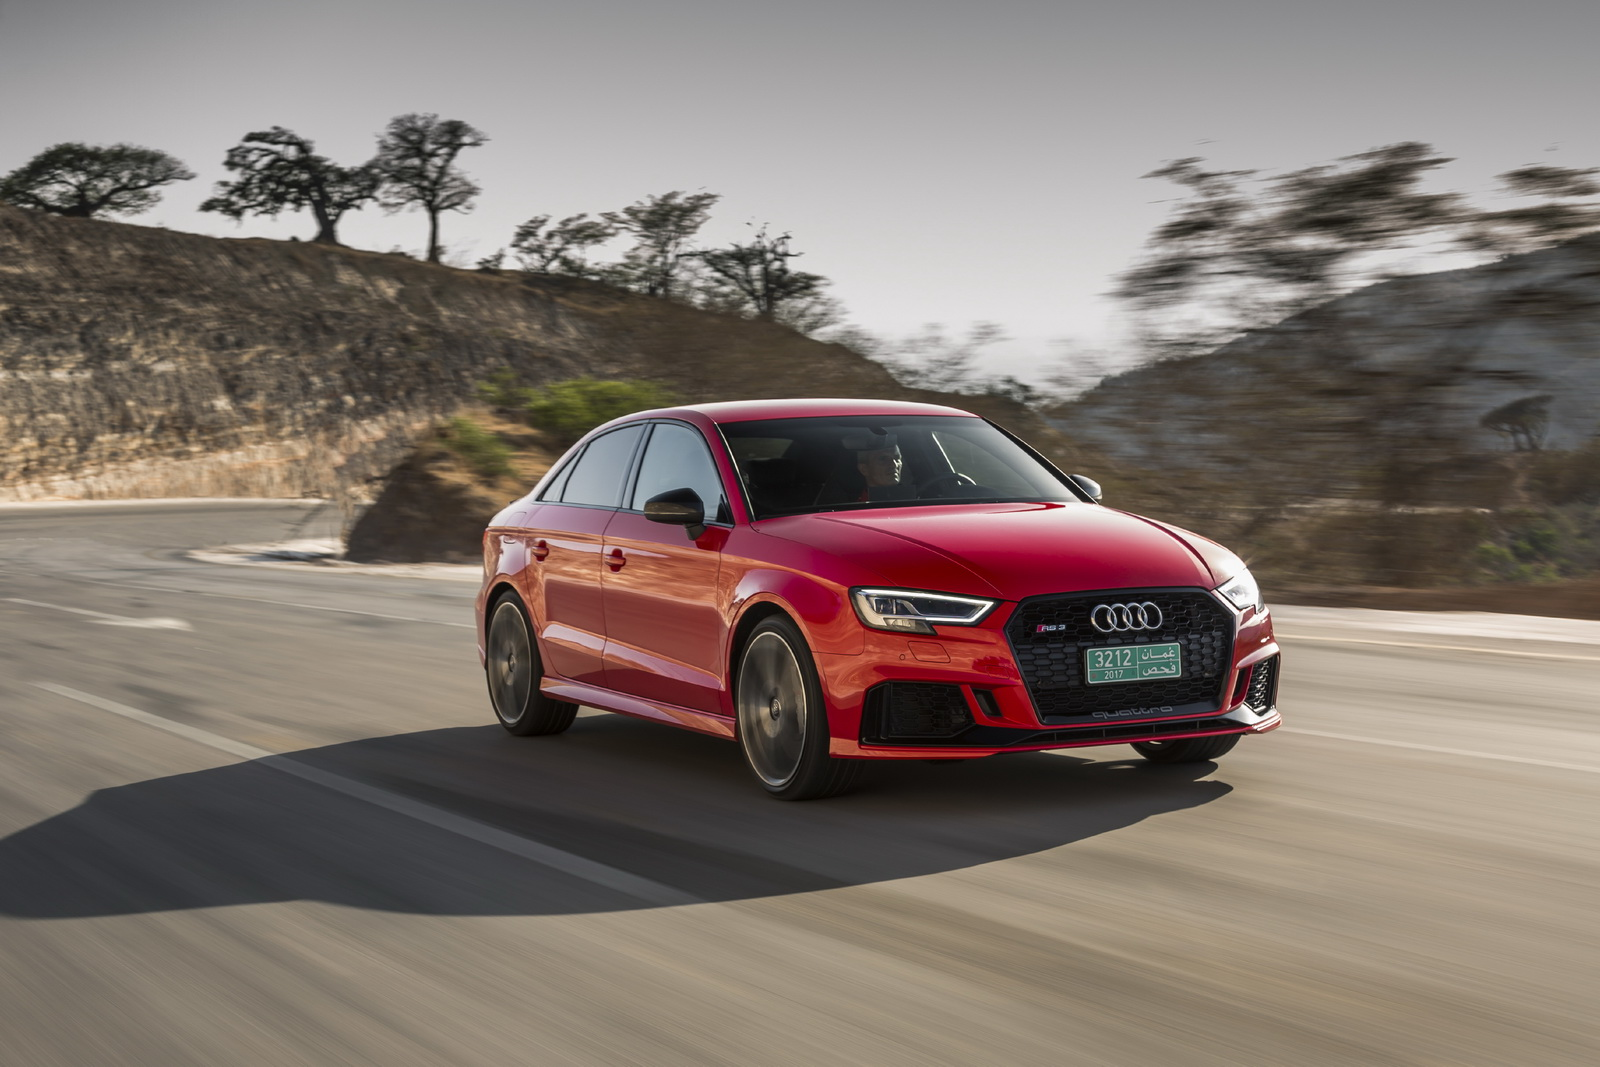 Audi Details New 2017 Rs3 Sedan With More Photos Forcegt Com